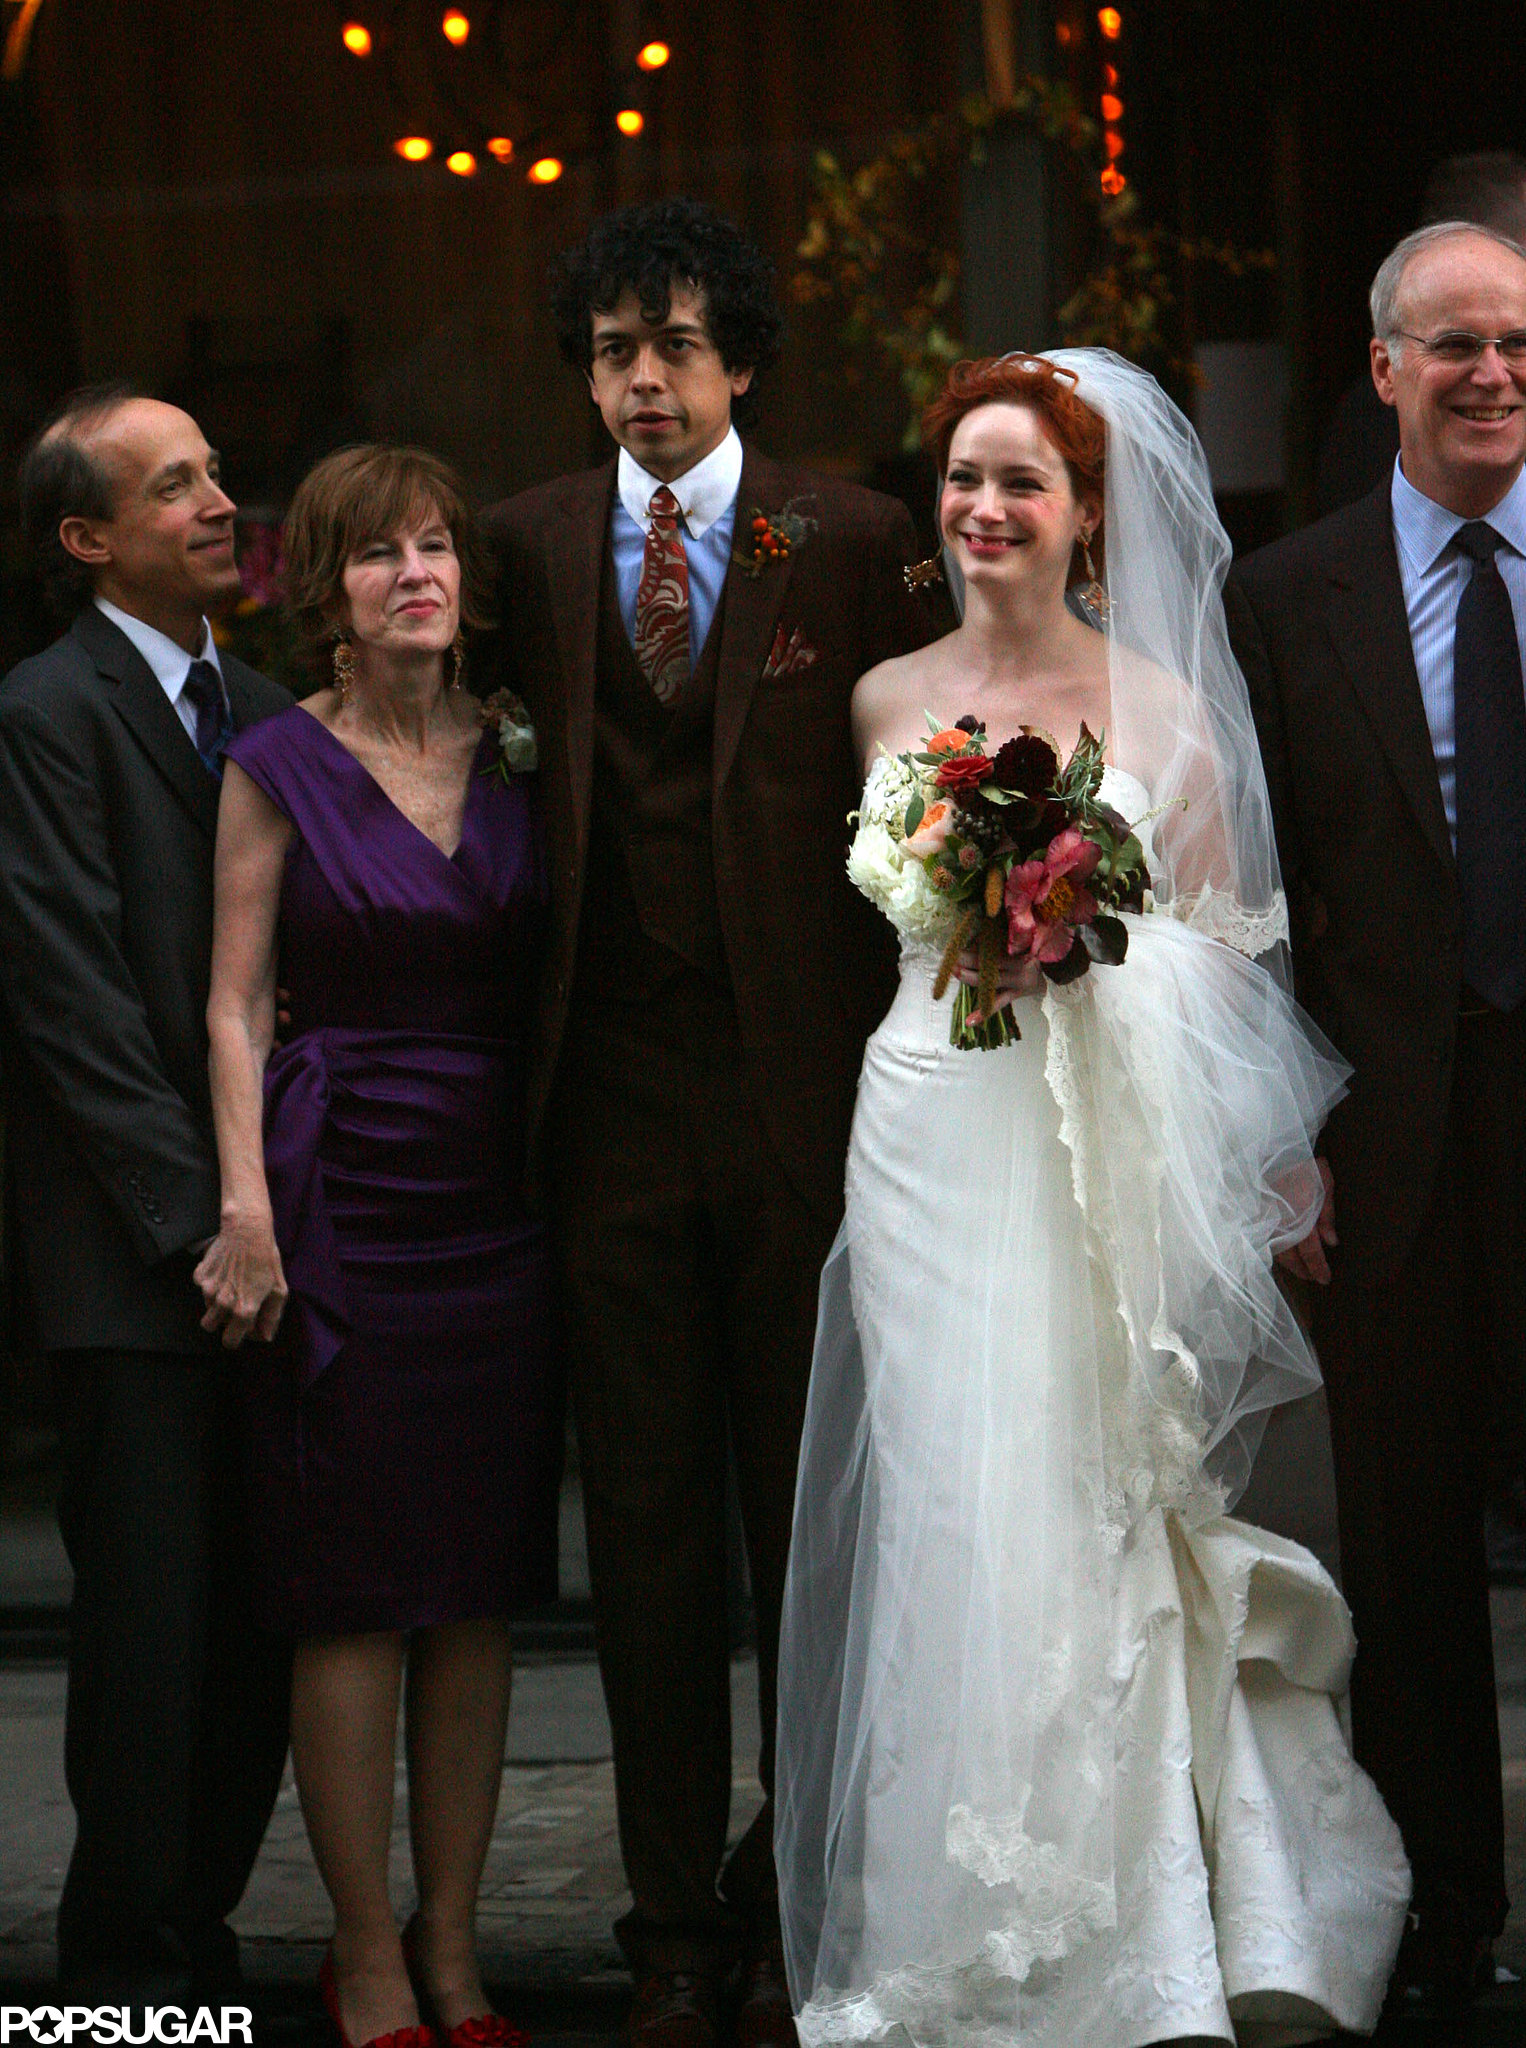 Christina Hendricks and Geoffrey Arend posed with family after their October 2009 nuptials in NYC.